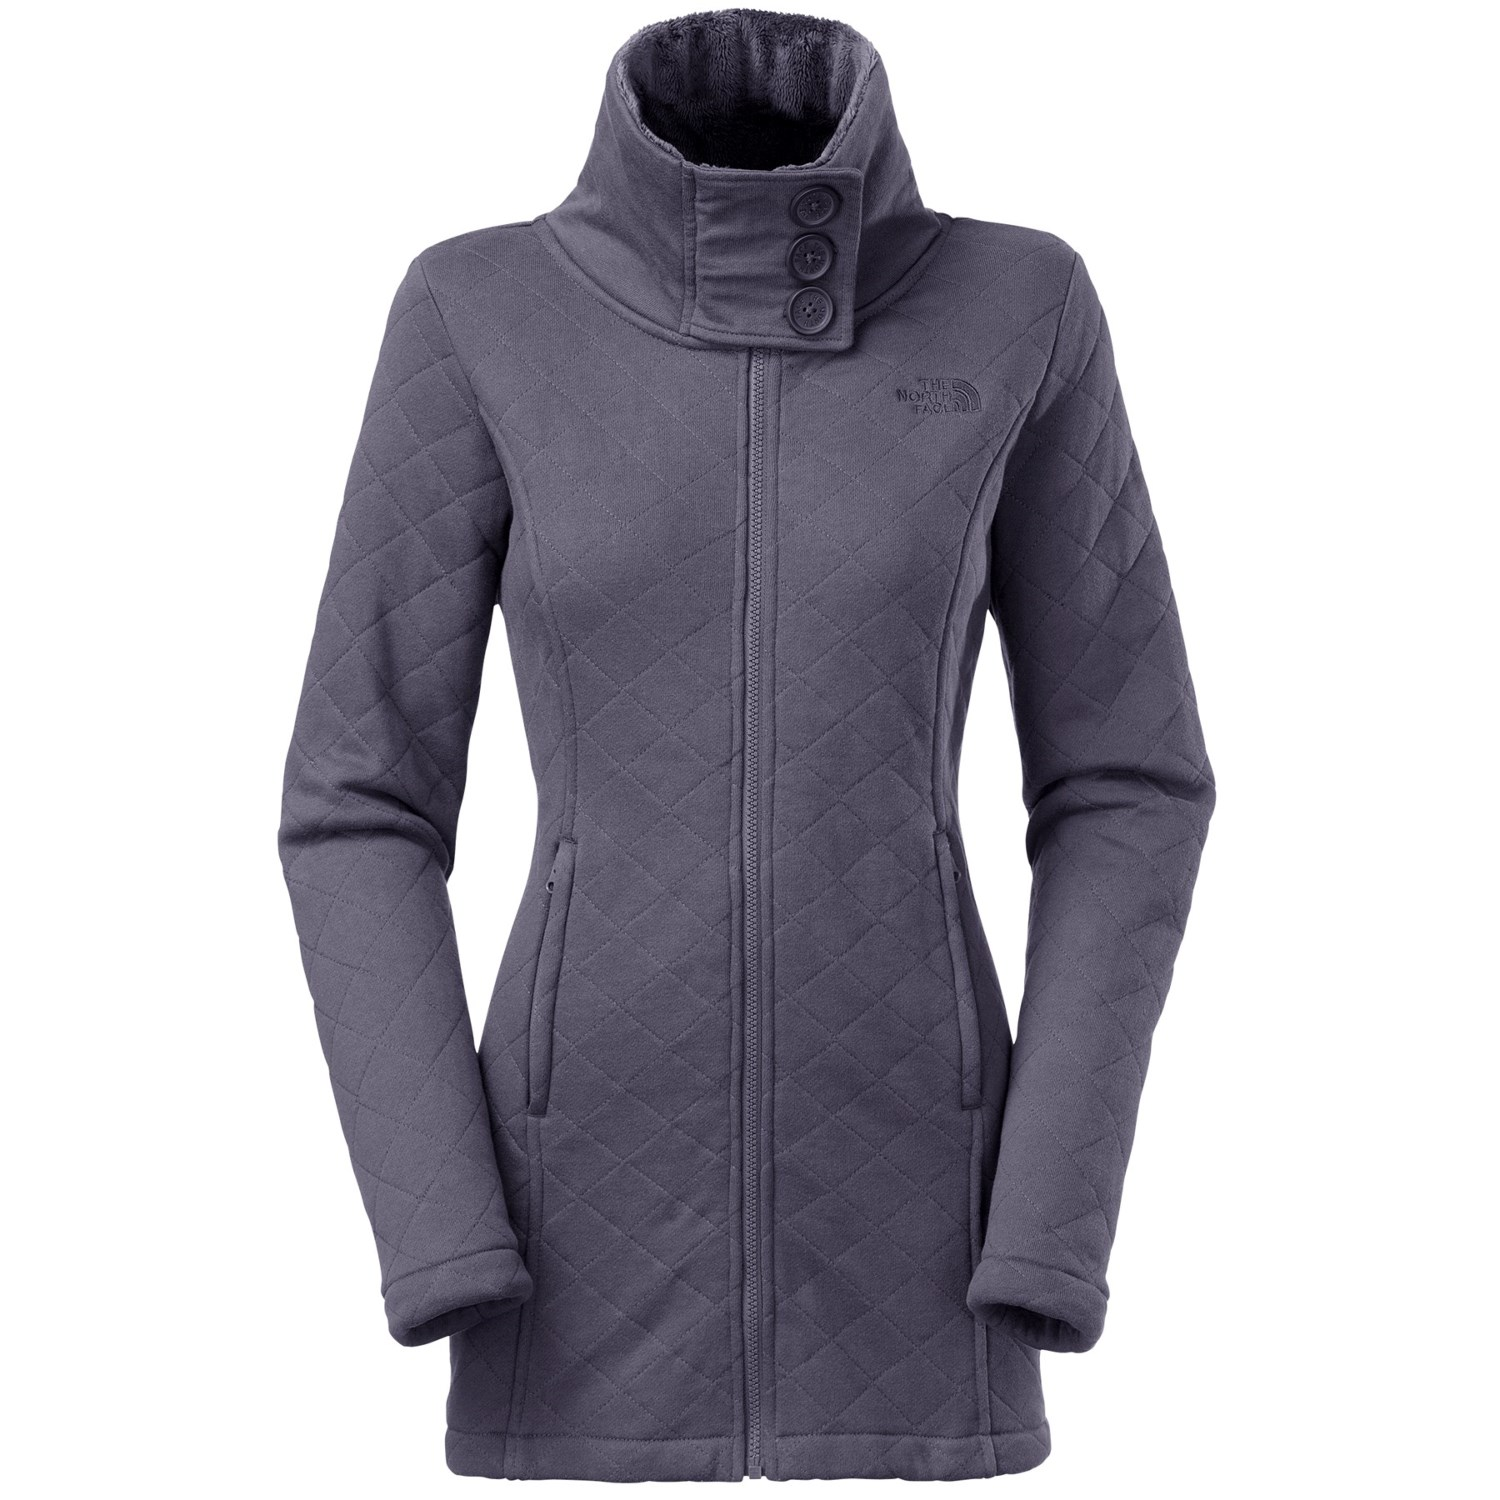 The North Face Caroluna Fleece Jacket For Women In